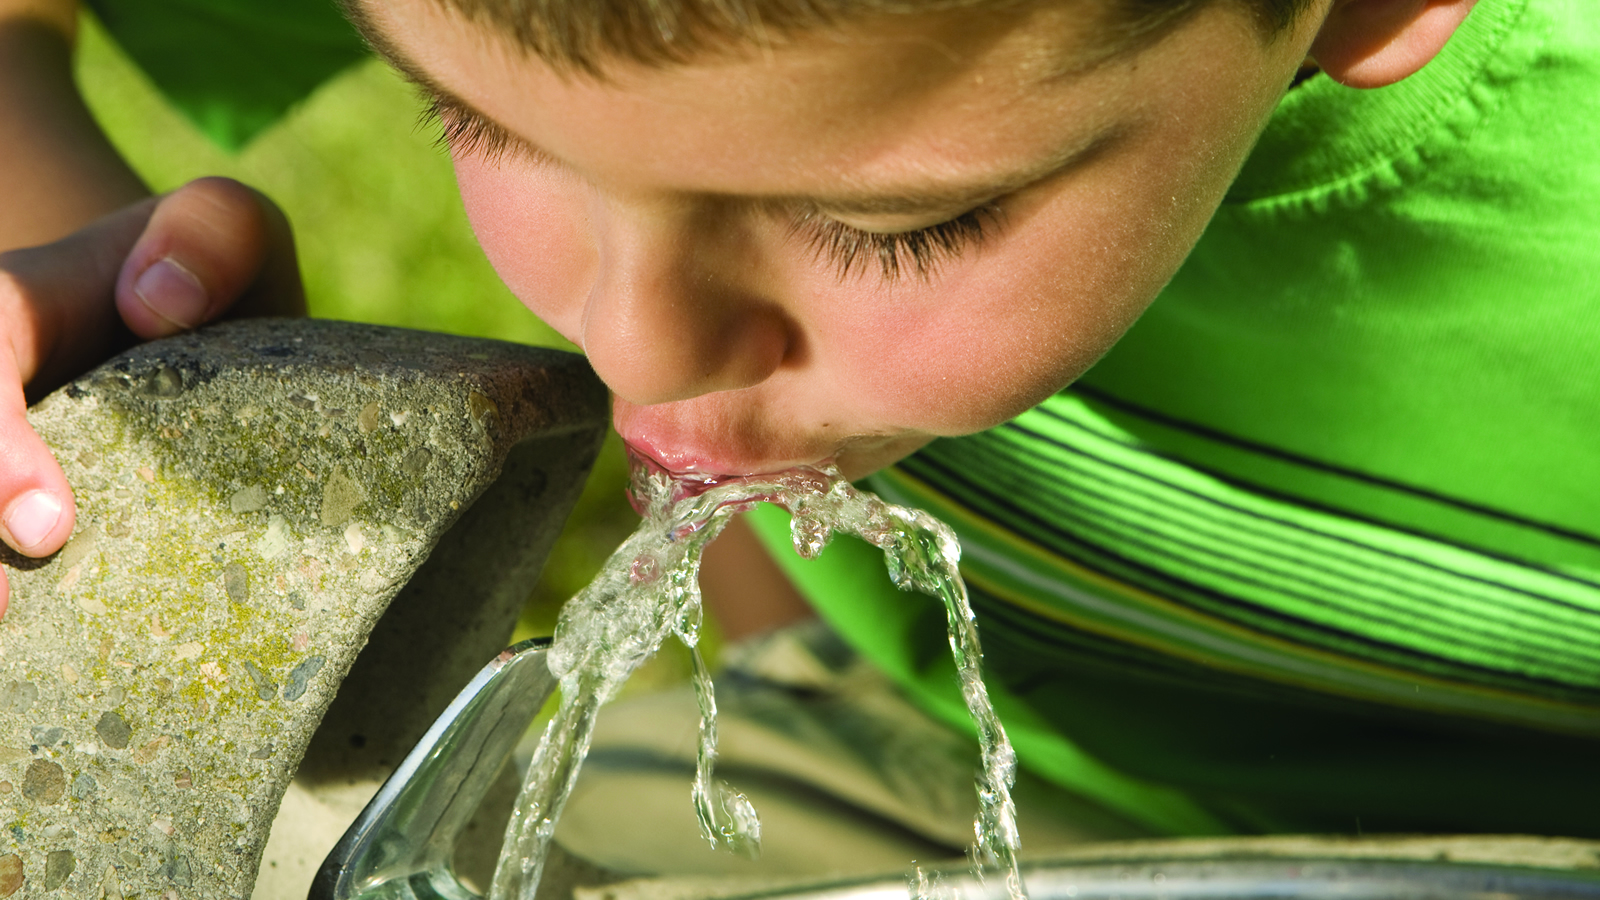 <h4>Clean Water &amp; Air</h4><h5>Prolonged exposure to lead can negatively impact learning, growth and behavior. But research shows lead contamination in water fixtures in schools across Montana. No parent should have to worry that the drinking water at their child's school could contain lead. That's why we're working to Get the Lead Out of Montana's schools. <a href='/feature/mte/clean-water-air'>More...</a></h5>